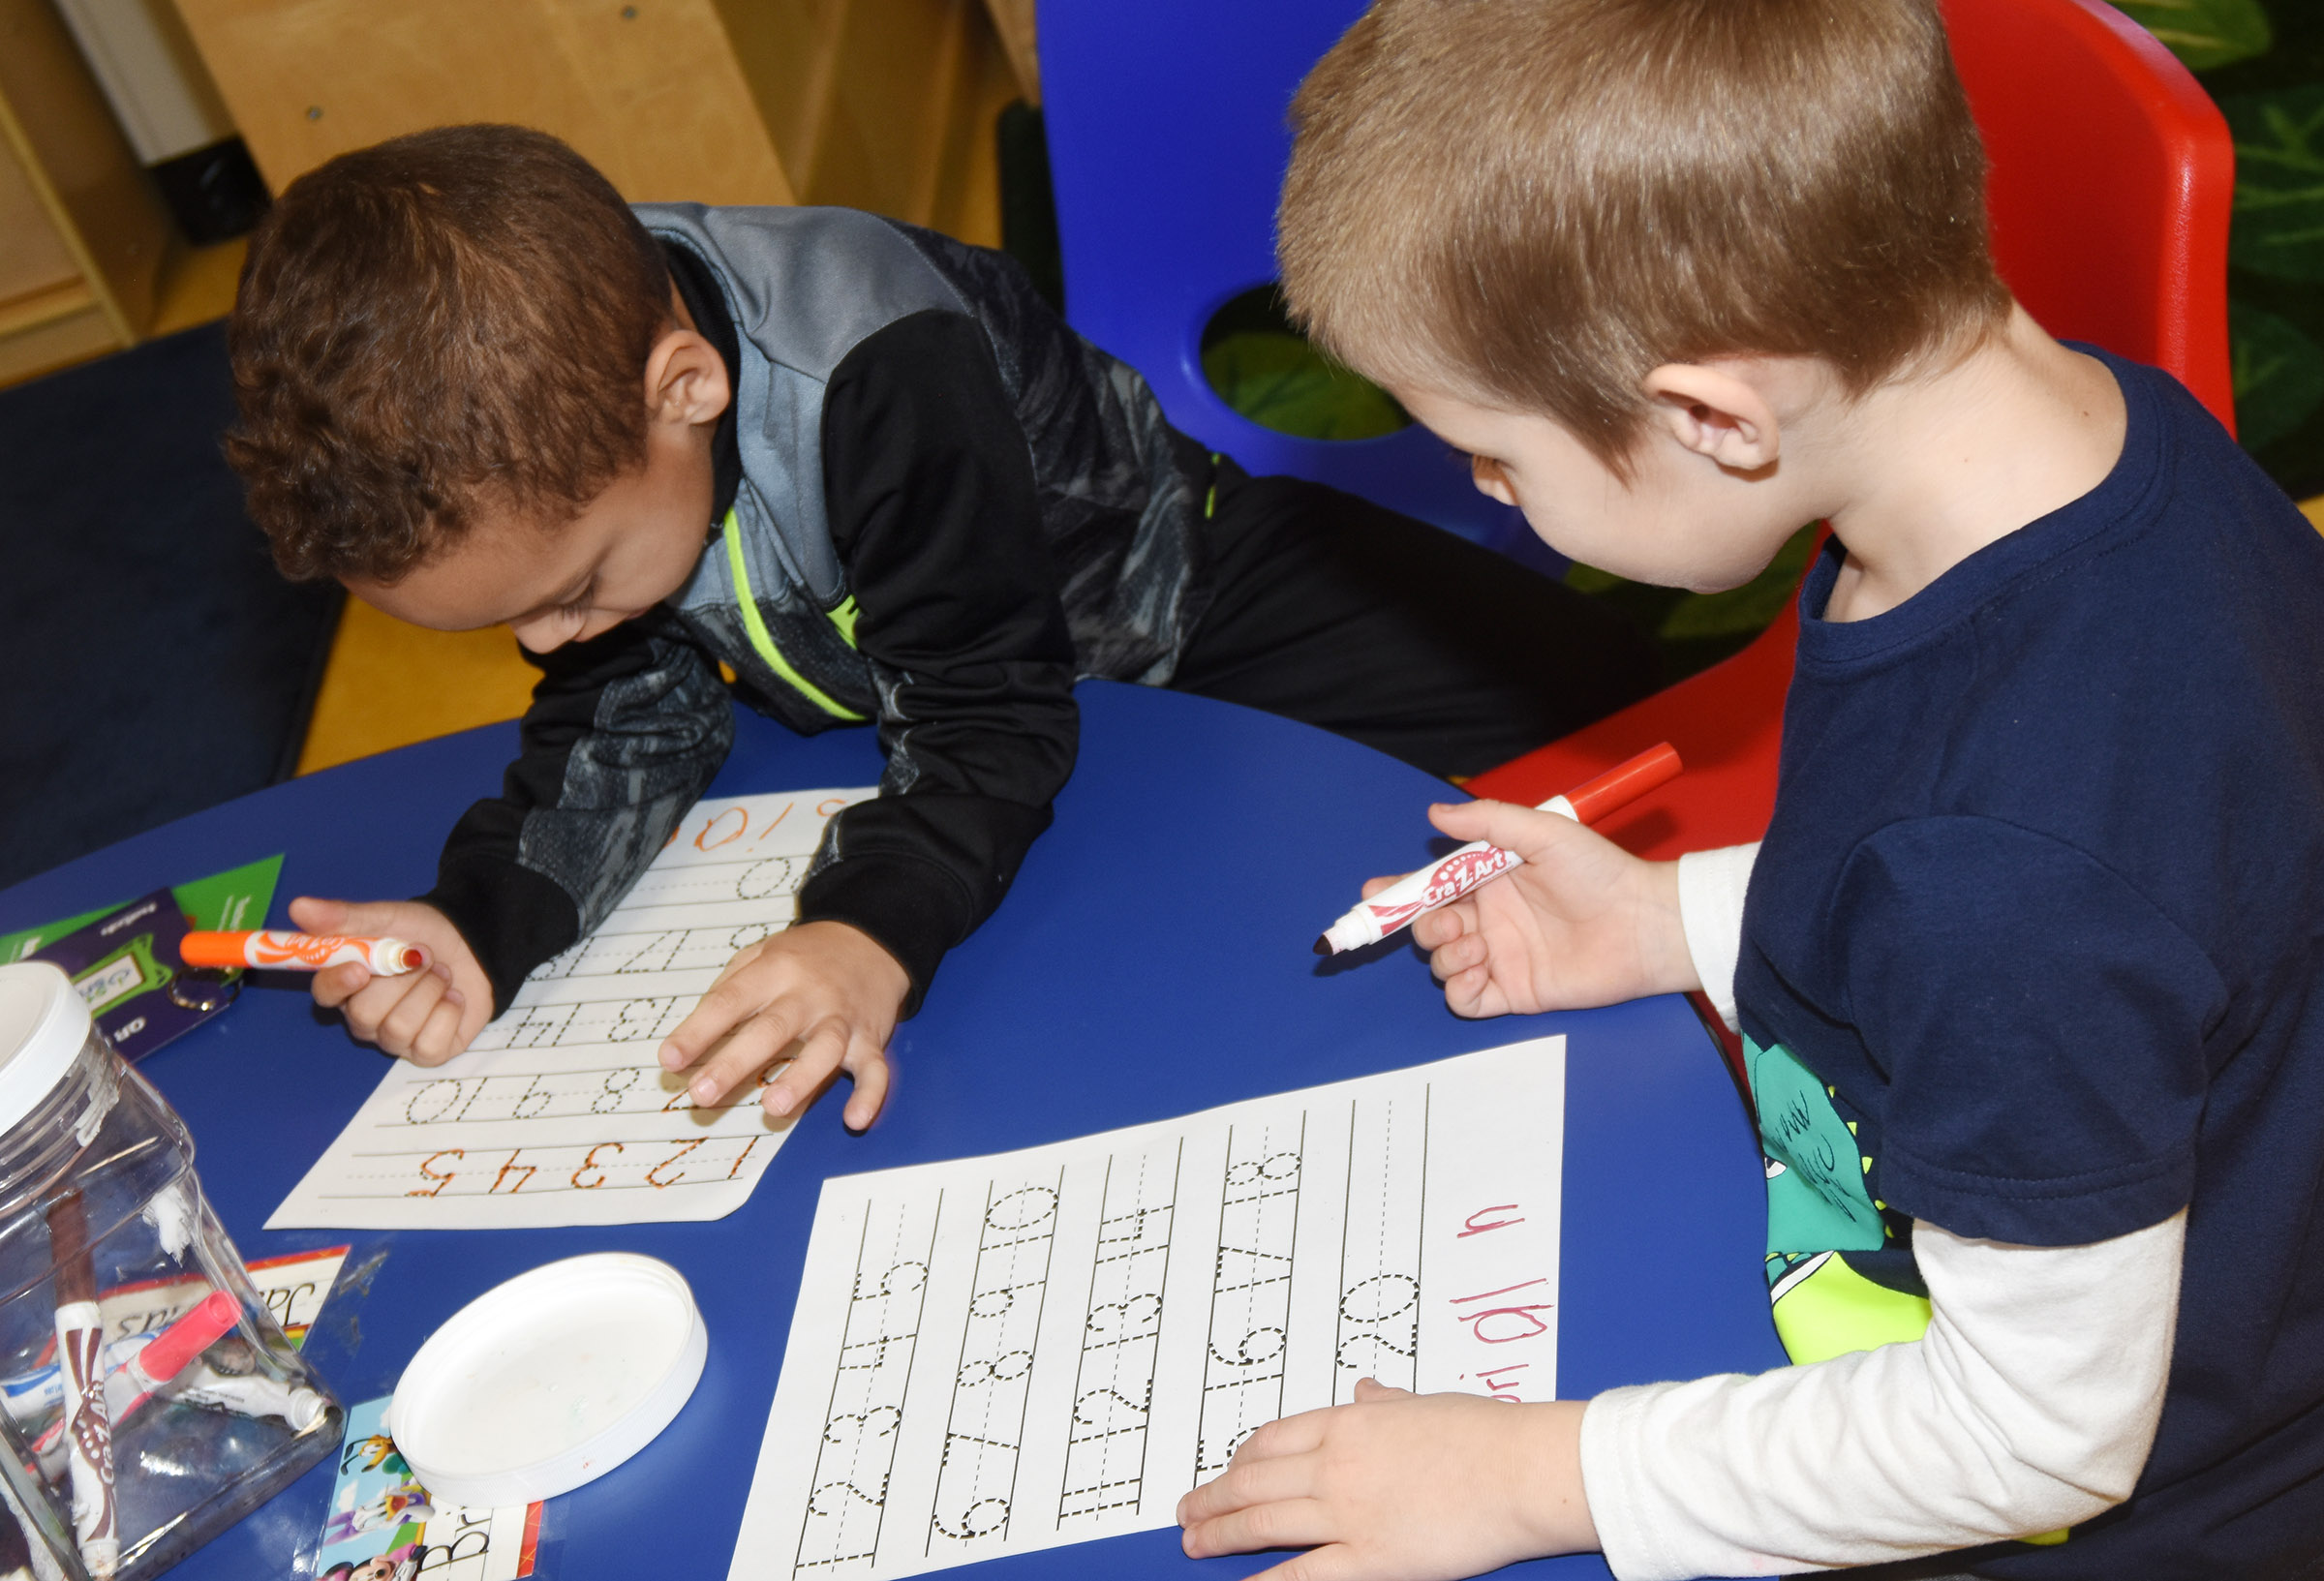 CES preschool students Jasiahas Anderson, at left, and Brian Daniels write the numbers from one to 20.